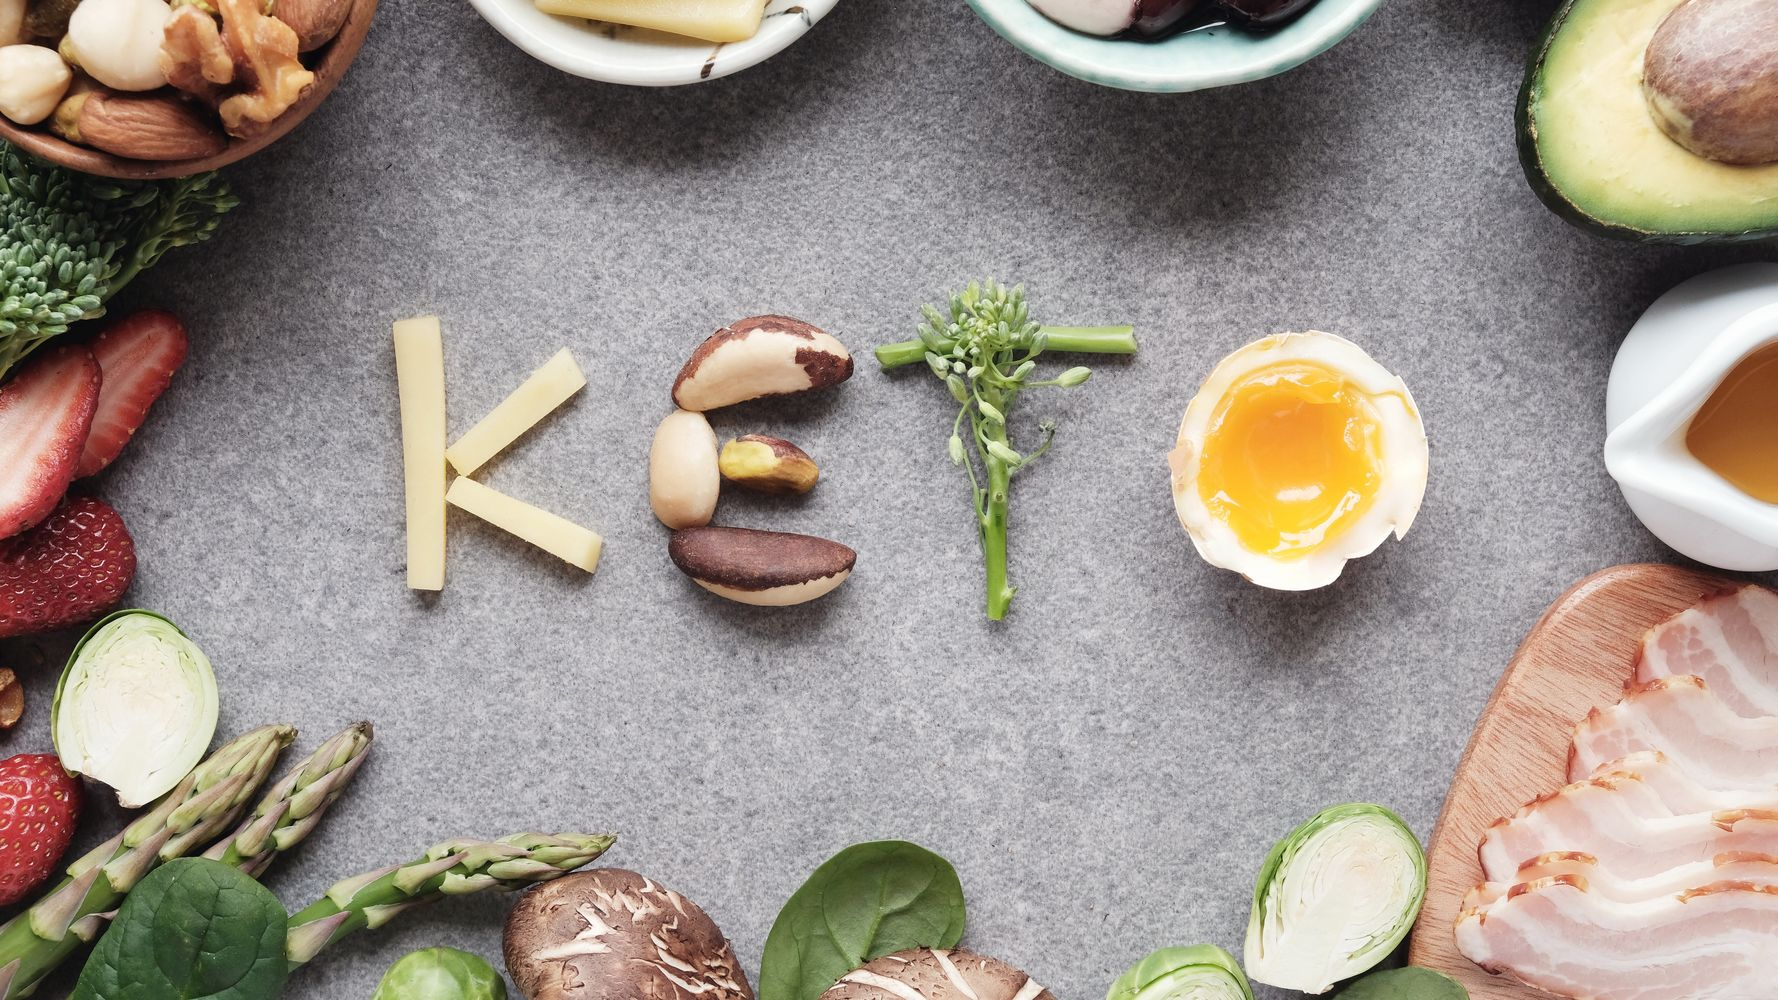 The Pros And Cons Of The Keto Diet According To Doctors And